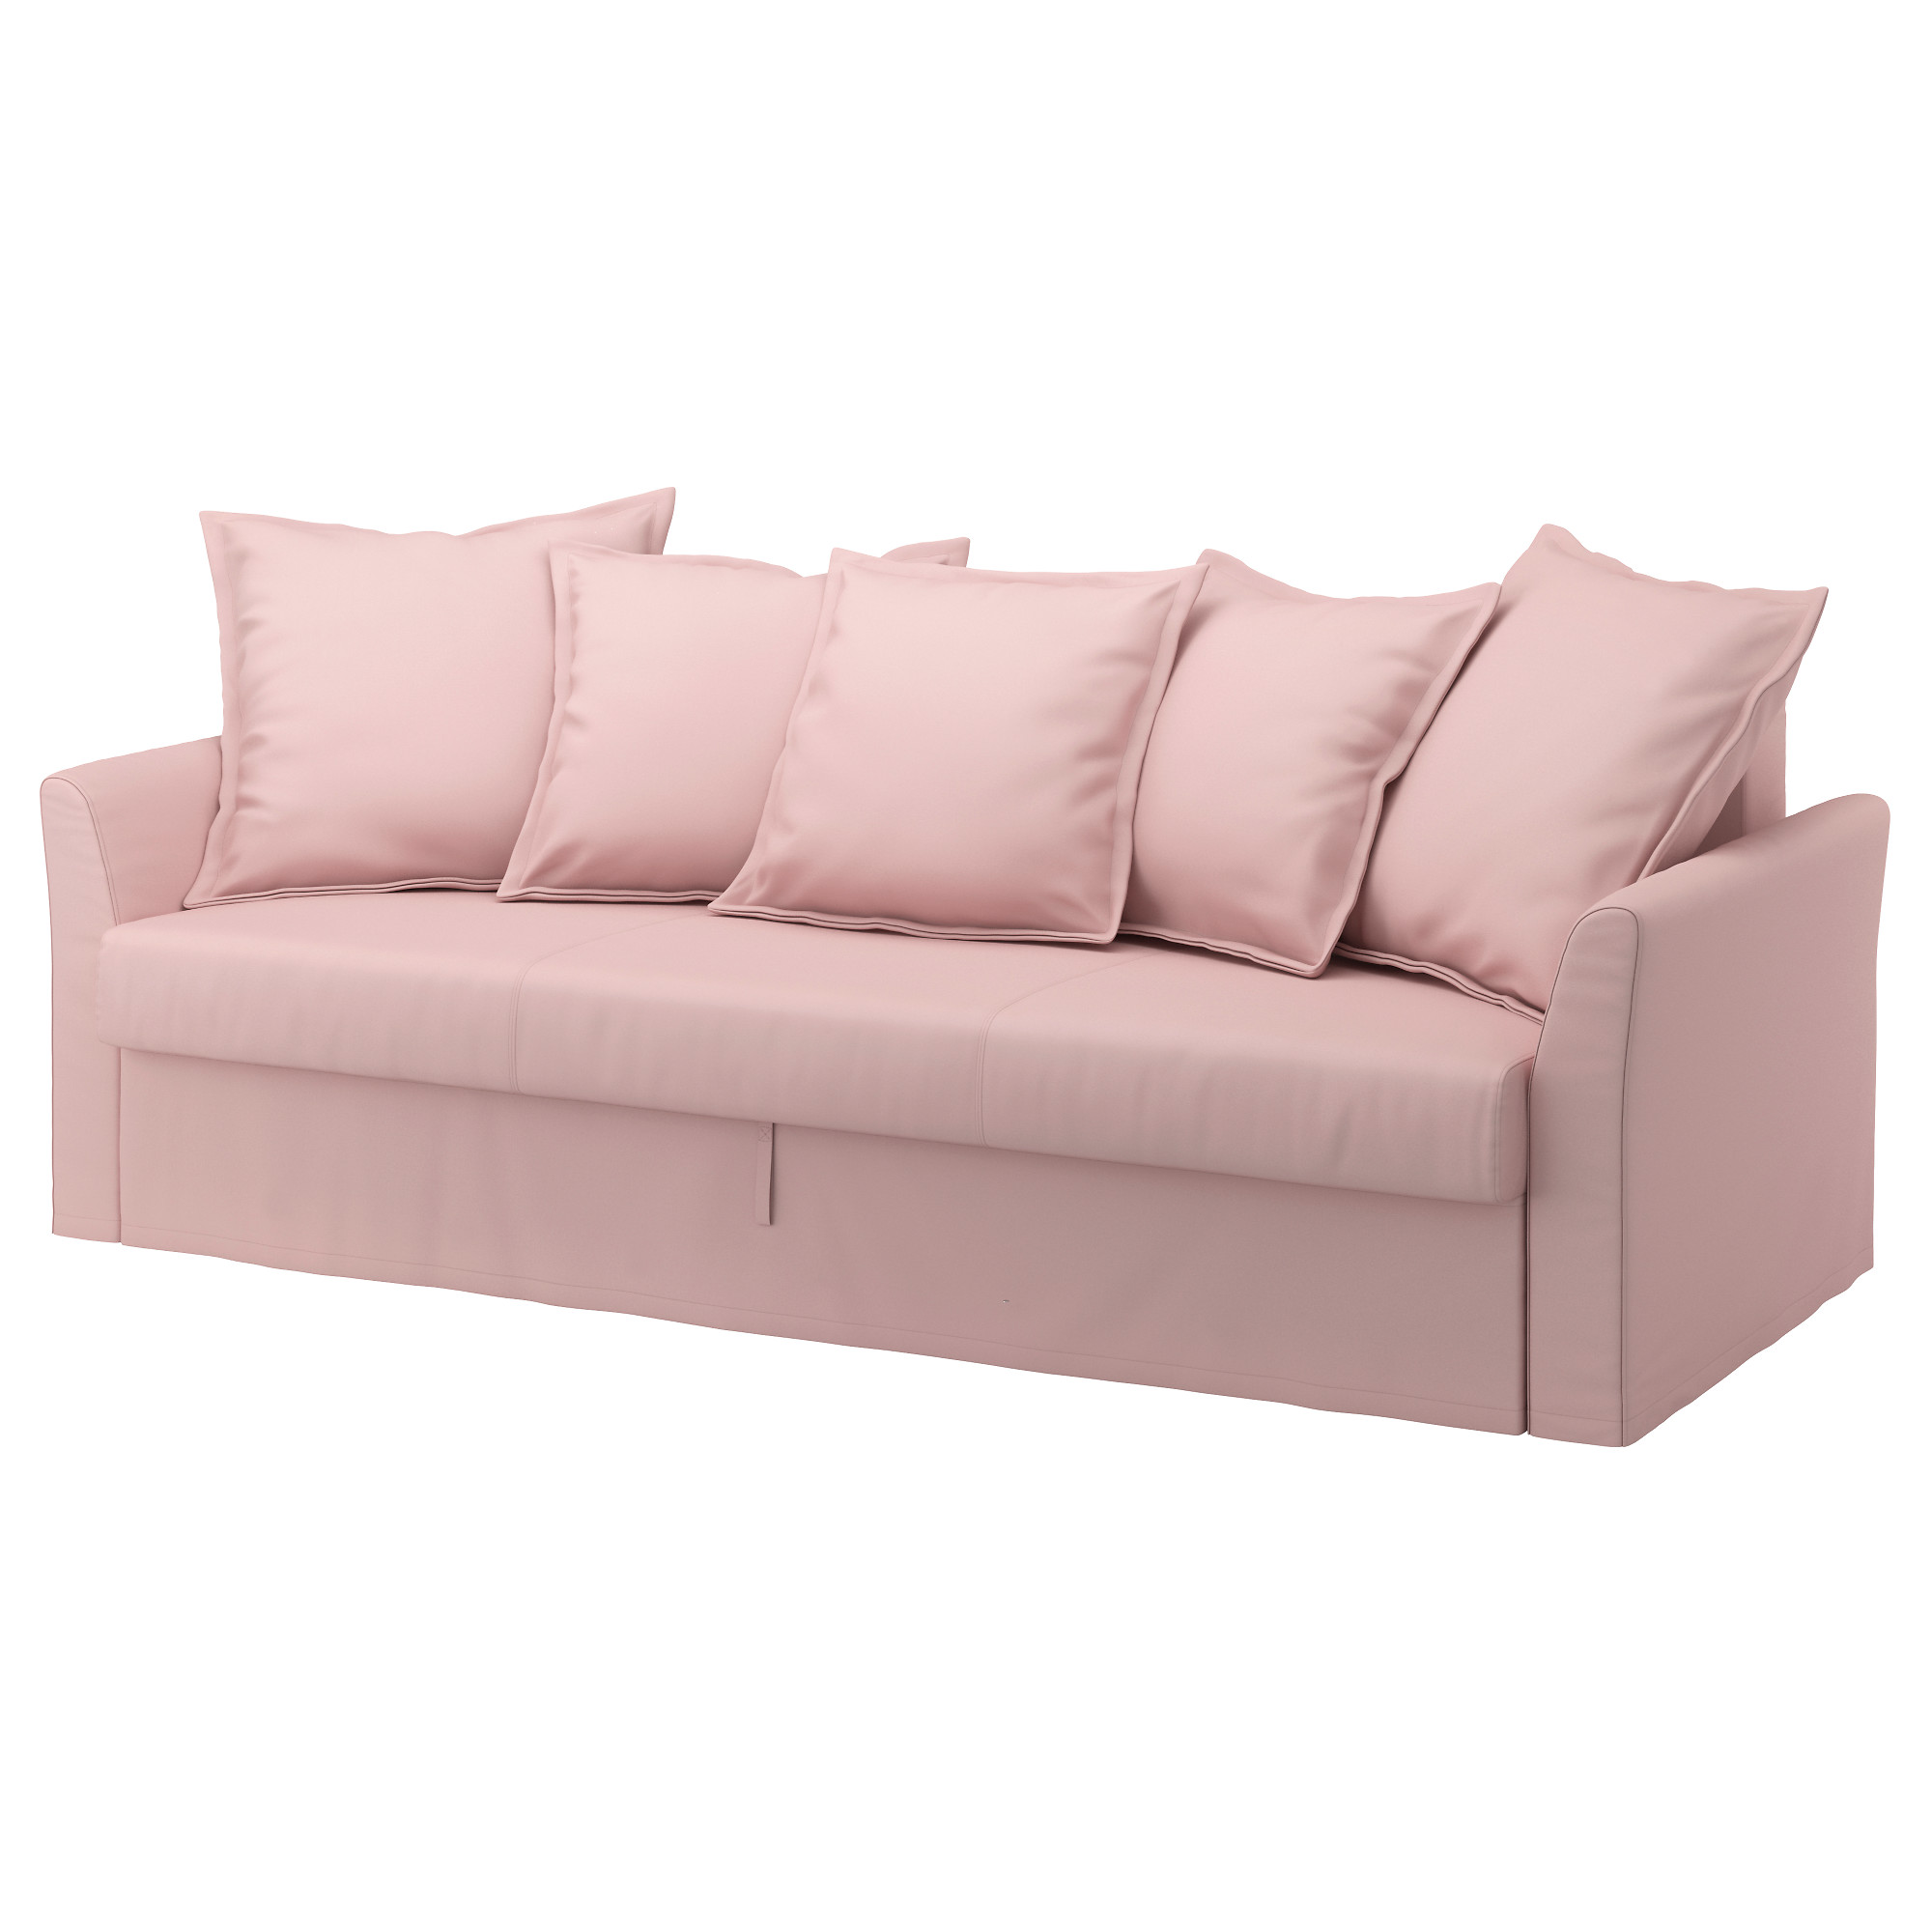 Couch Bed Ikea | Ikea Friheten Review | Moheda Sofa Bed